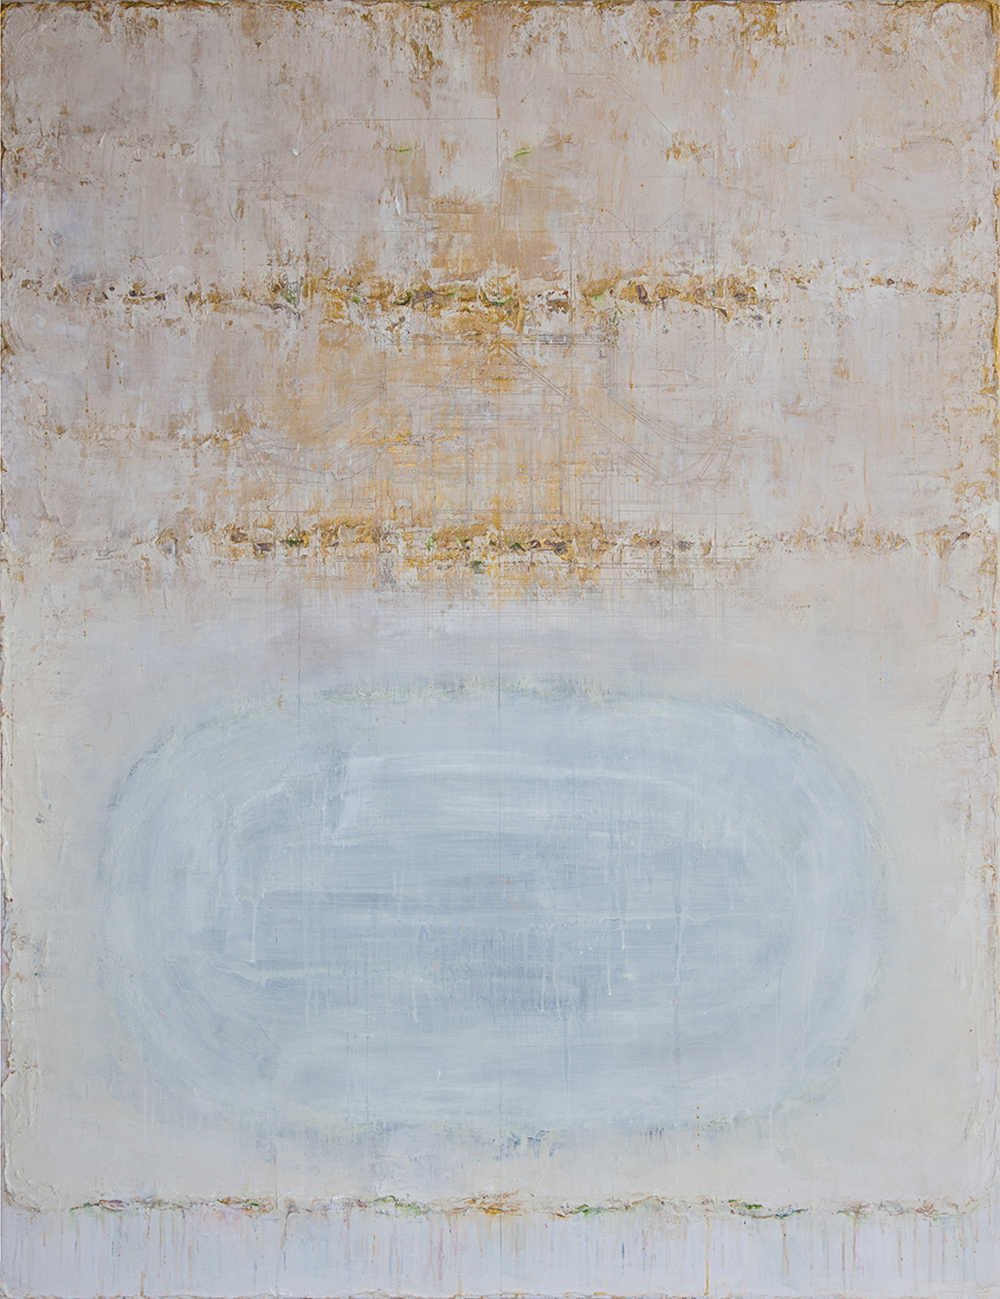 Golden Light #4, 2015, Mixed Media on Canvas, 150 x 120 cm, HA Manh Thang